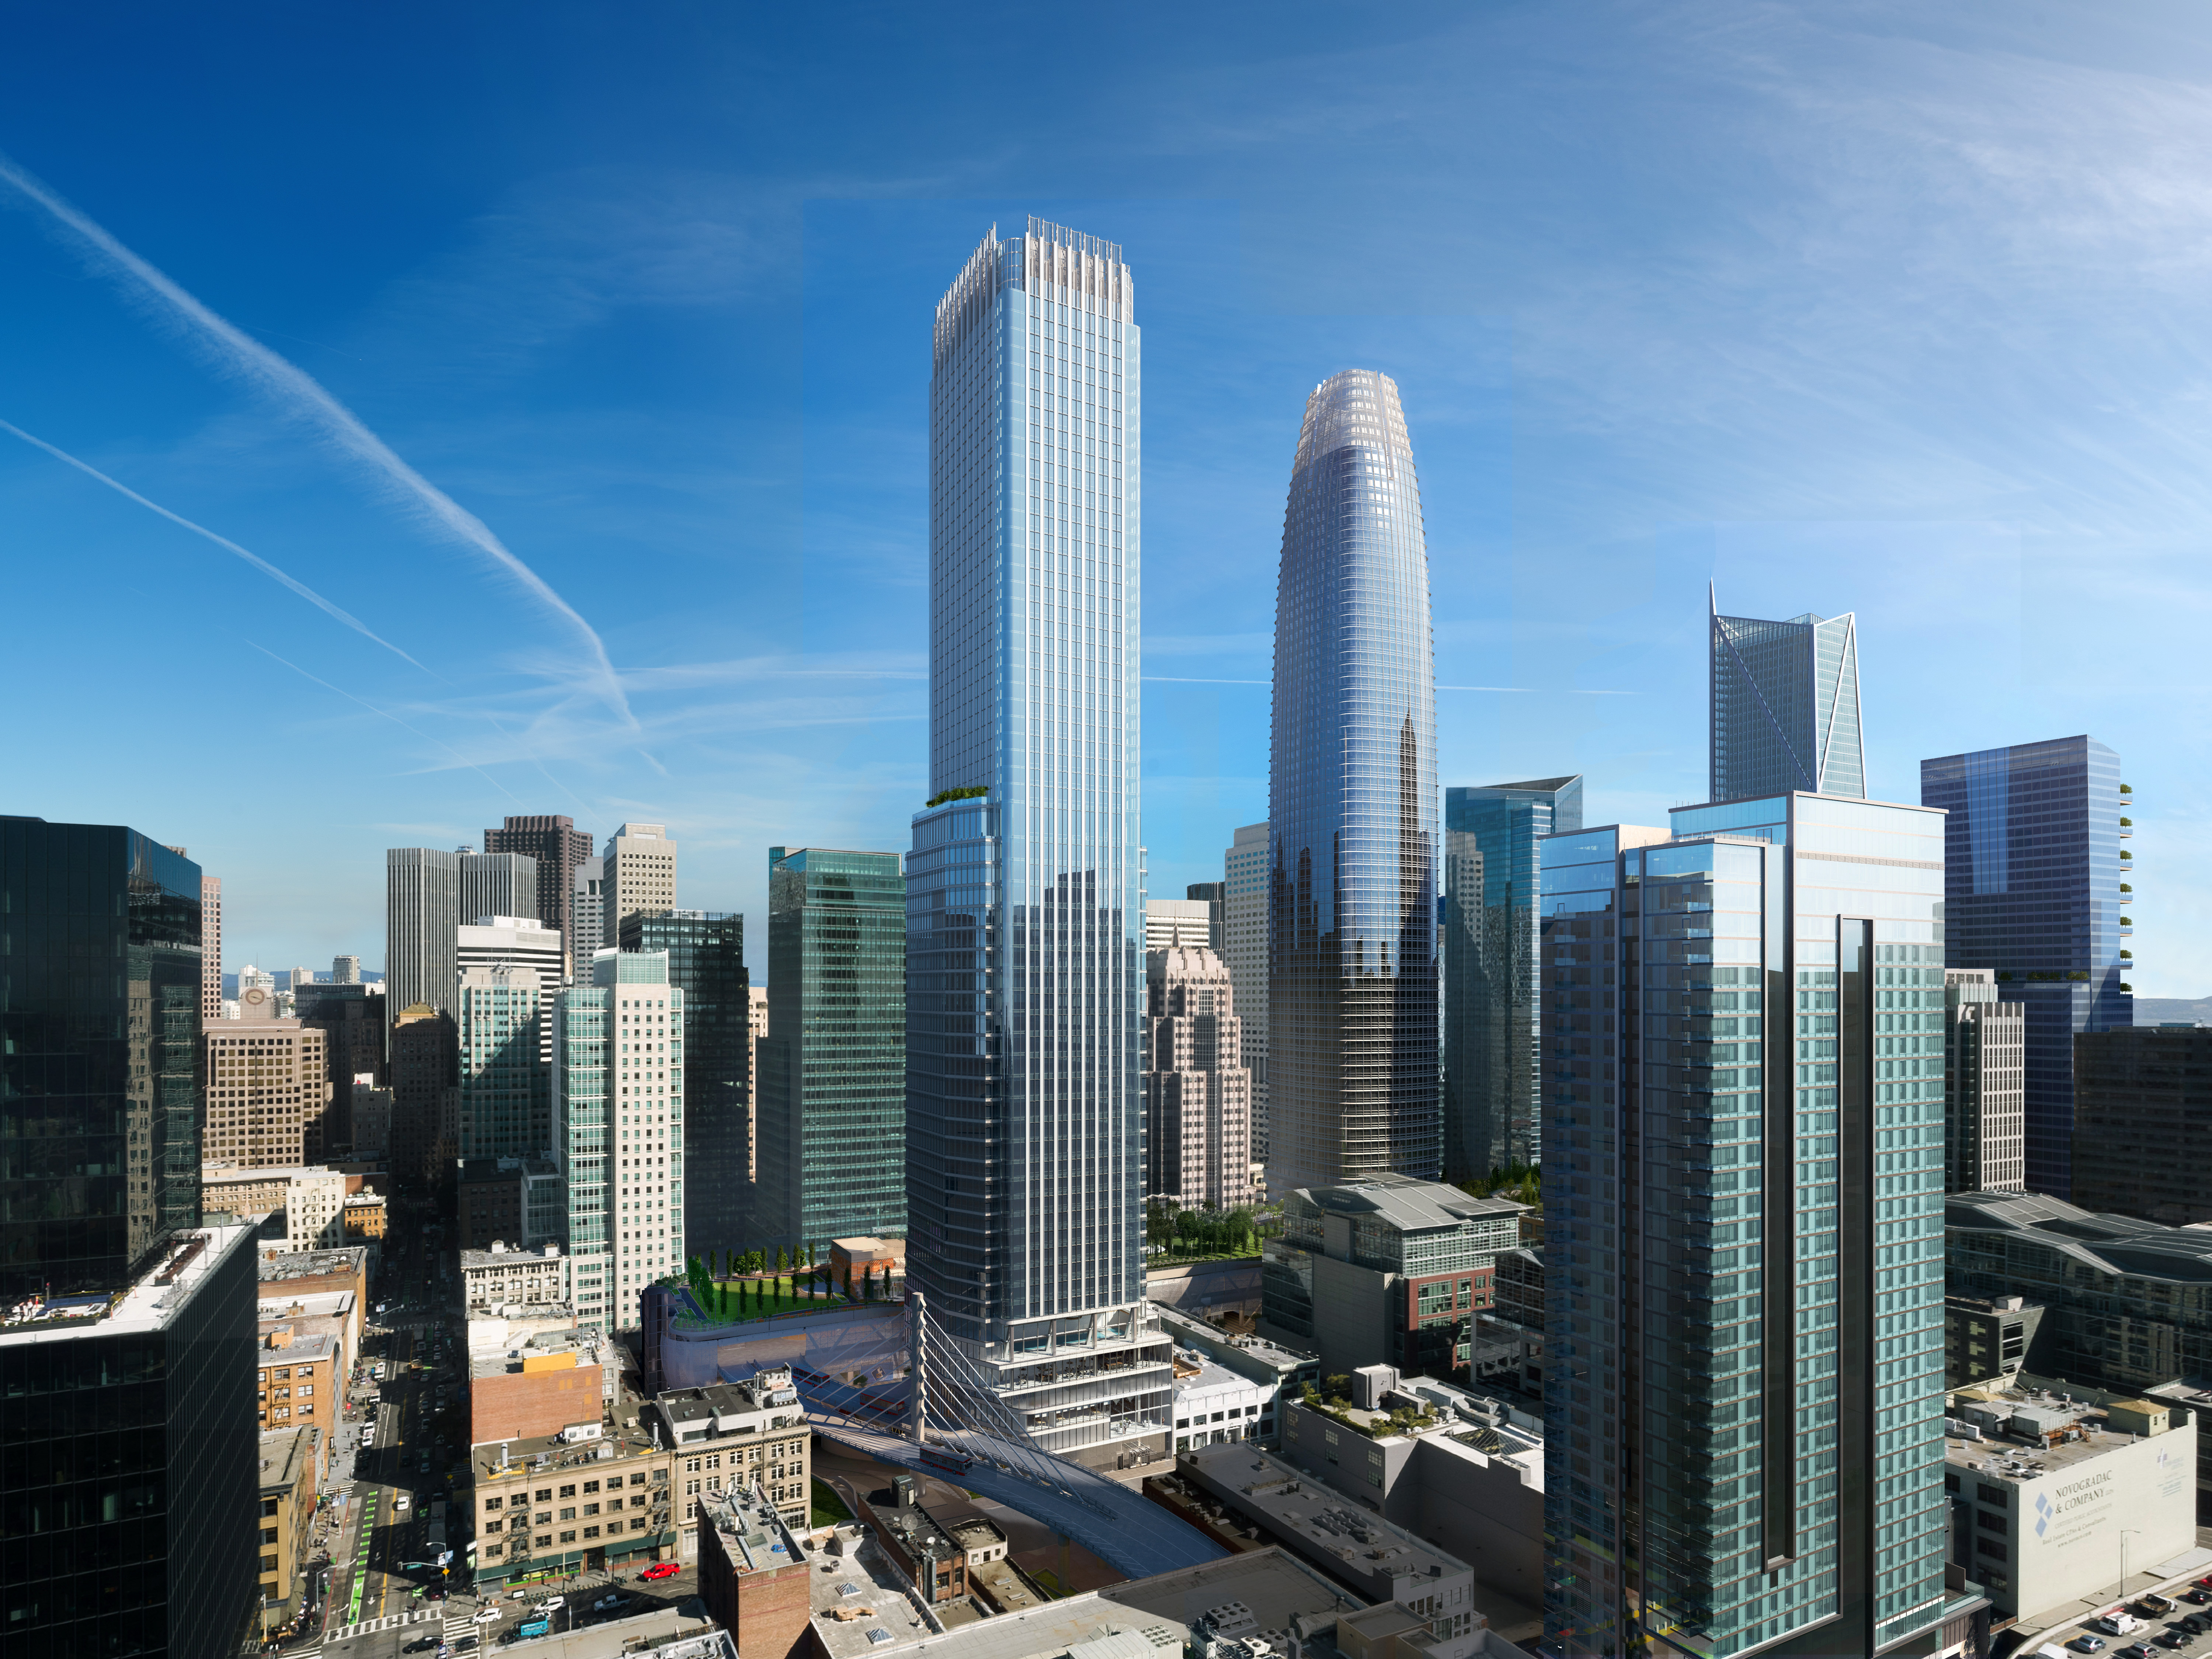 Updated rendering of Transbay Parcel F (left) next to the Salesforce Tower (right), courtesy of Pelli Clark Pelli and SteelBlue